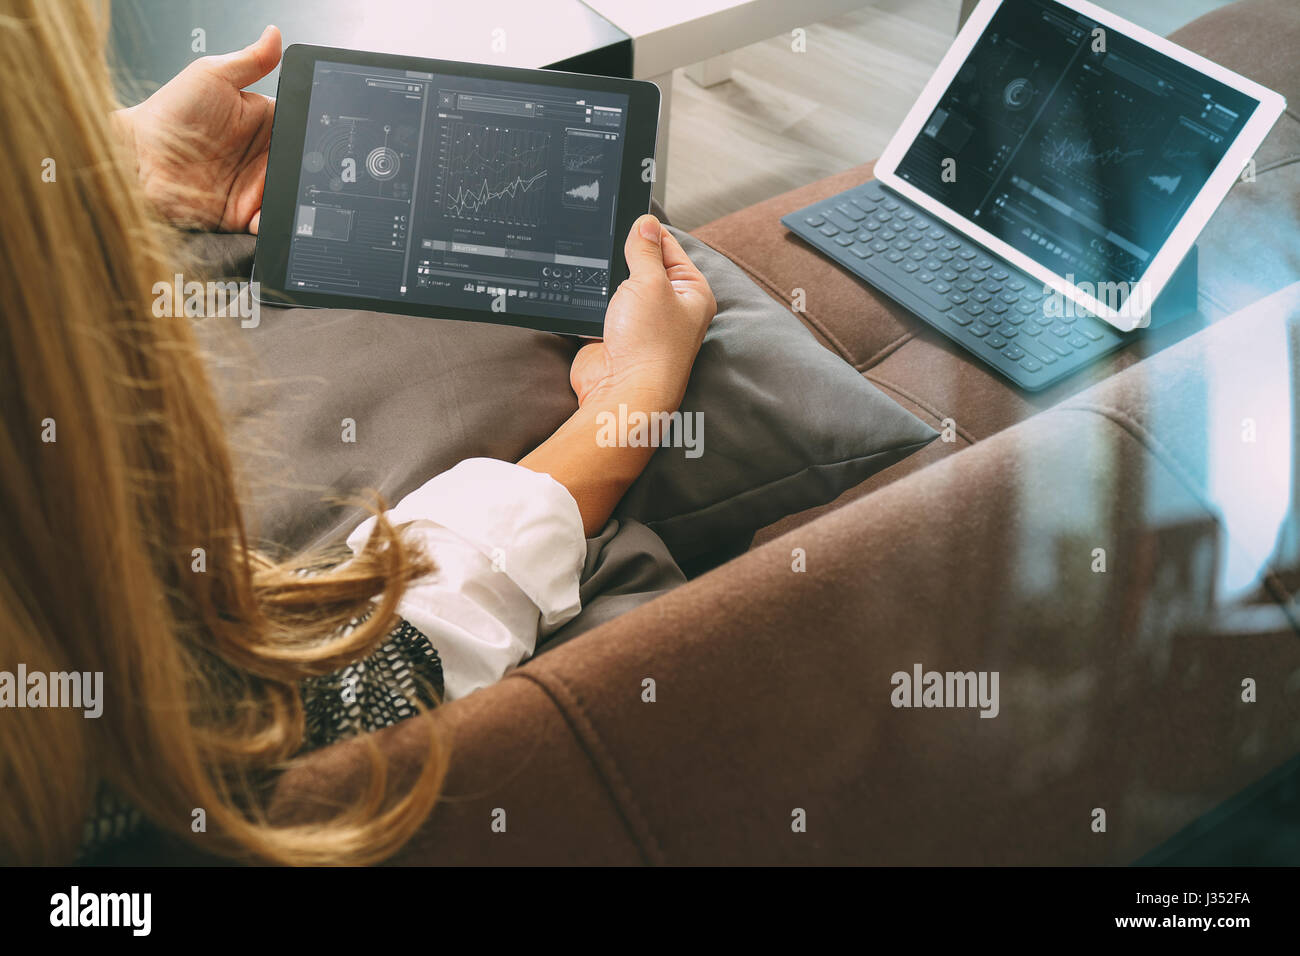 brunette woman using digital talet and laptop computer on sofa in living room - Stock Image